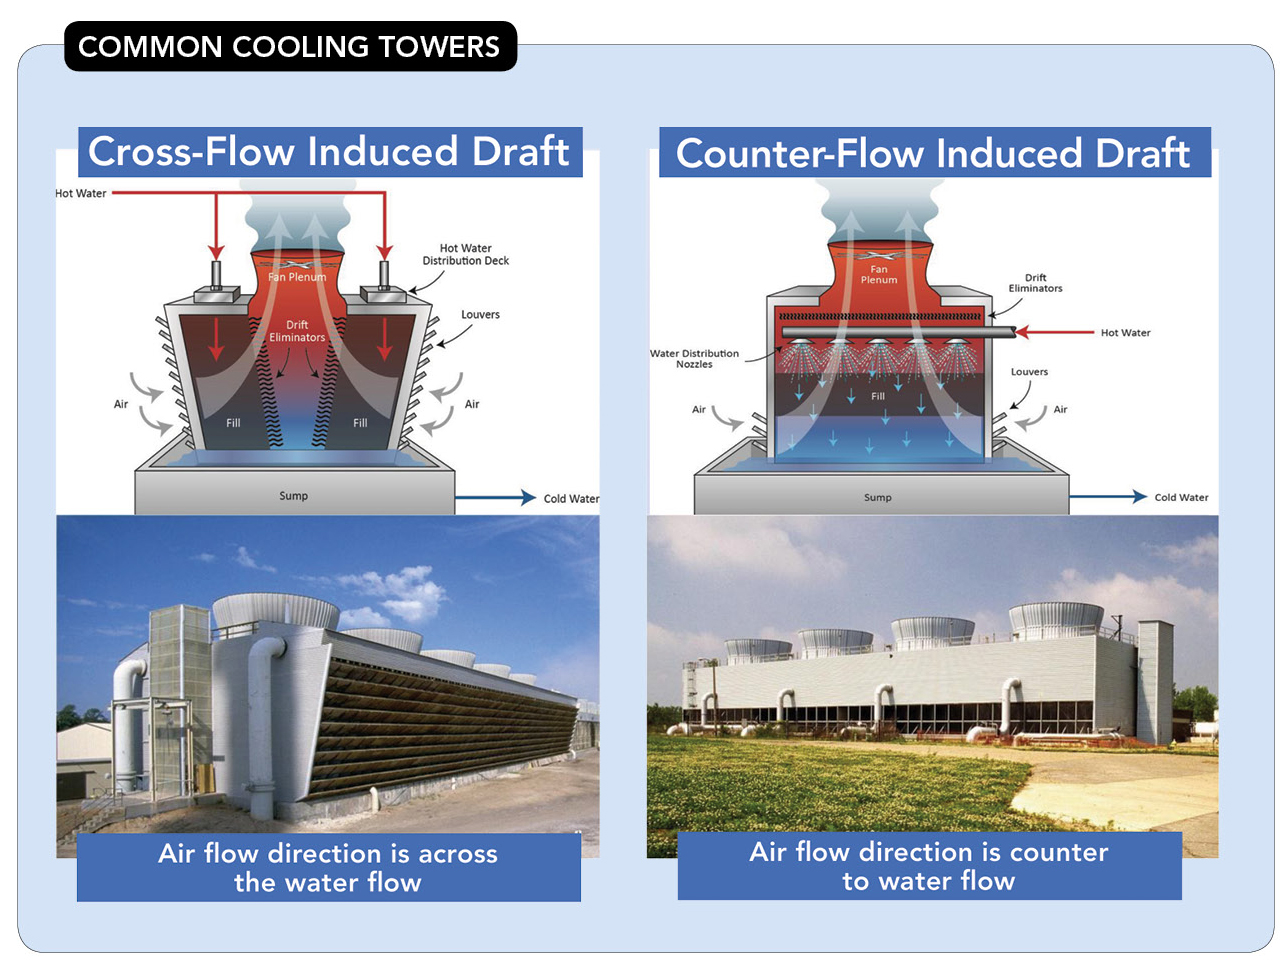 Understand the Importance Of Correct Cooling Tower Fill